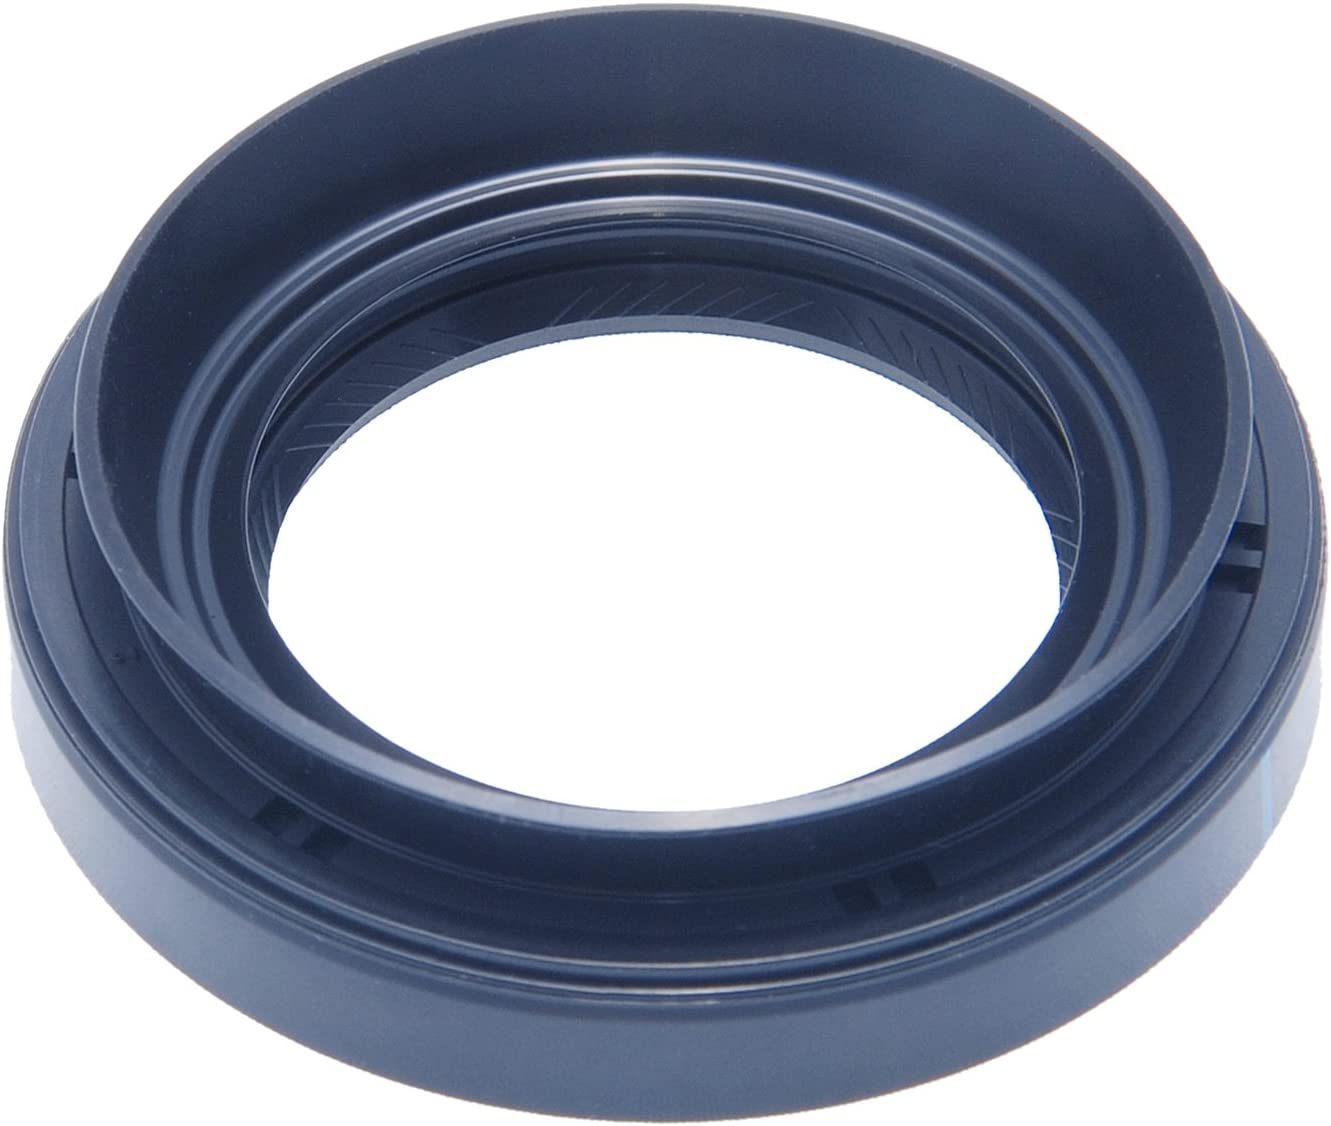 Mb393932 // Mb393932 Oil Seal For Mitsubishi 35X56X9X14,9 Axle Case